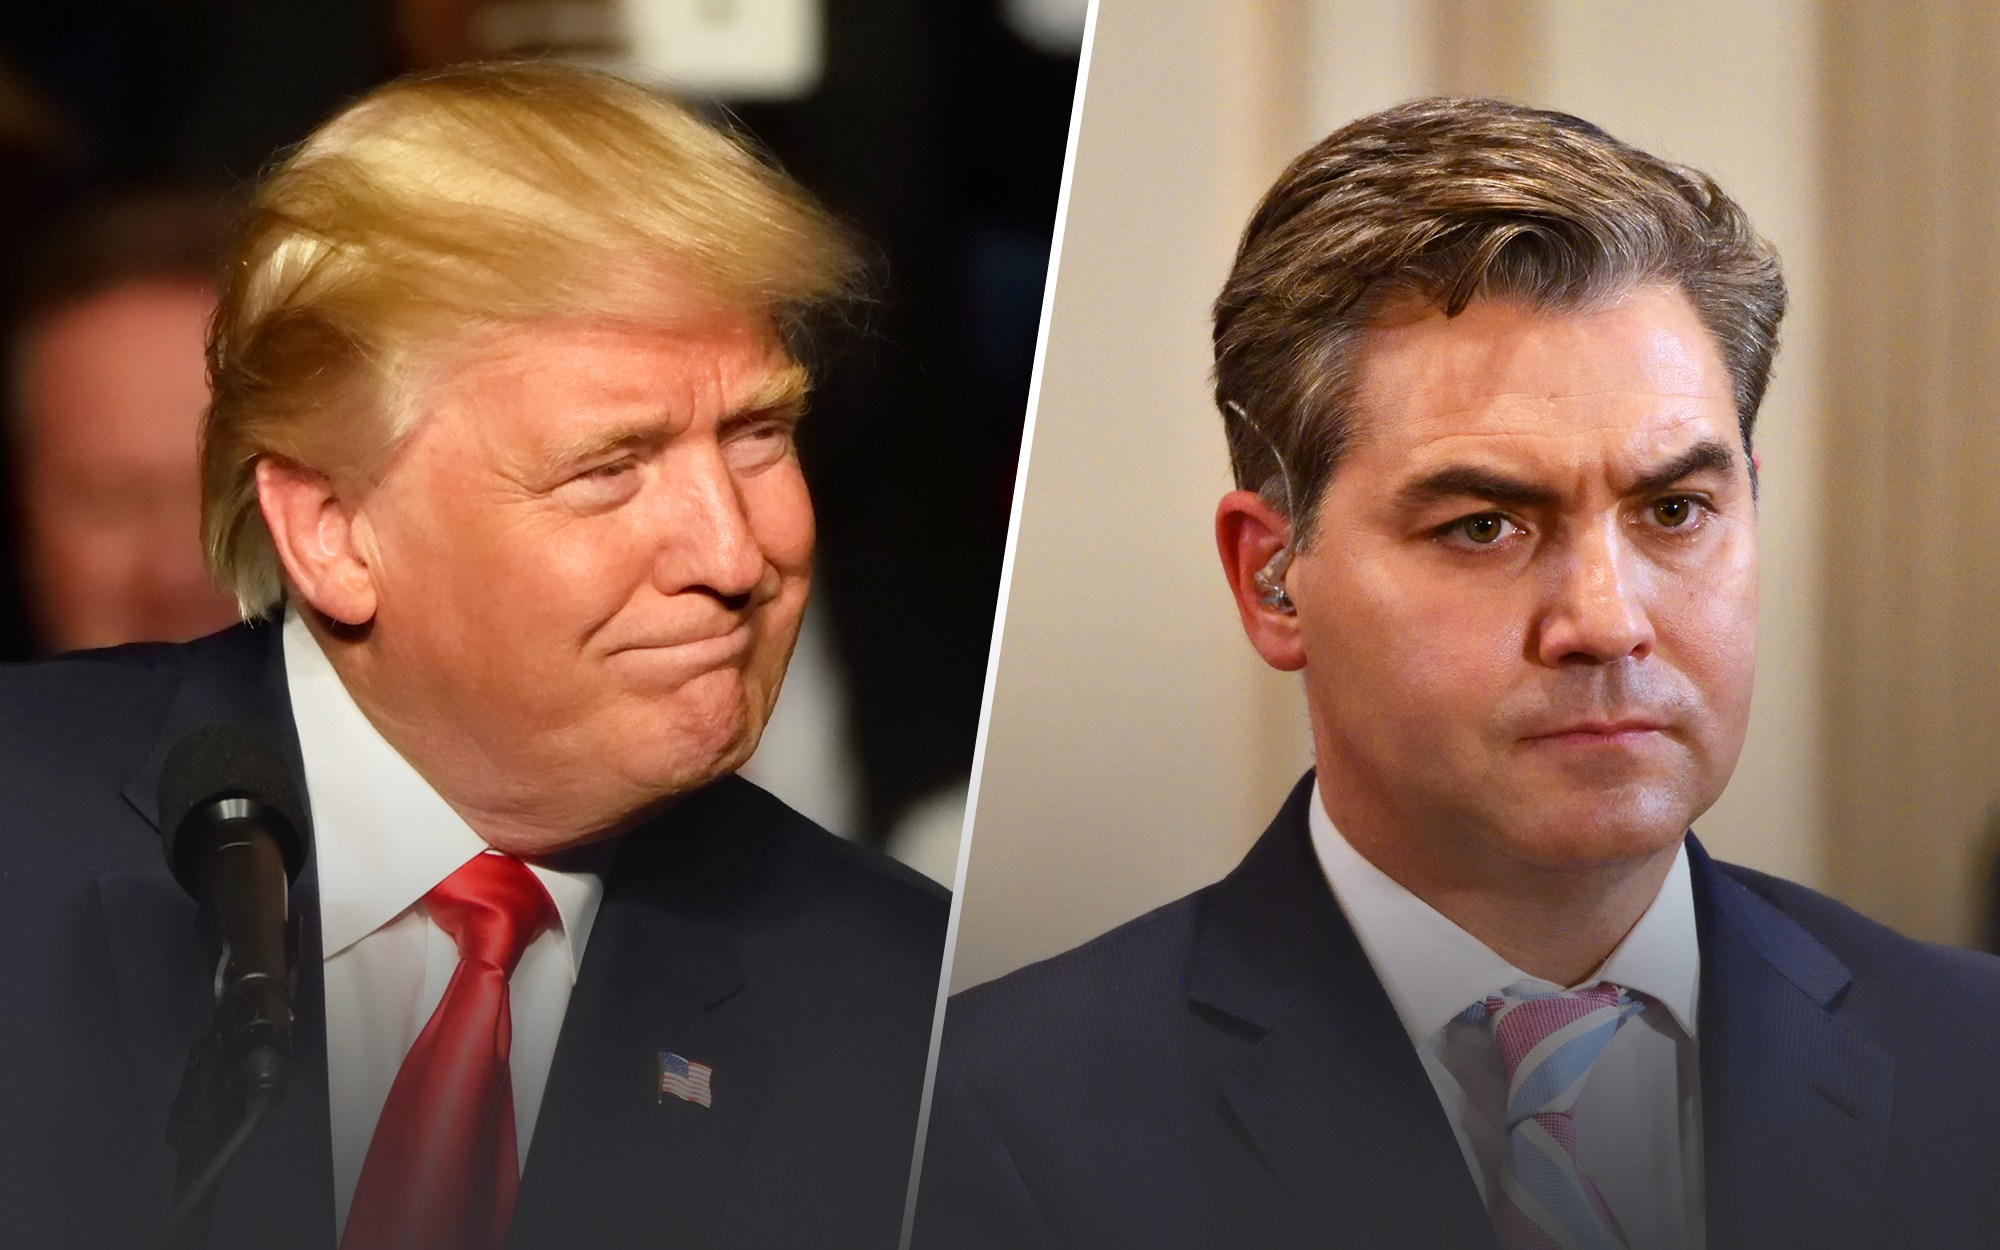 Trump Shuts Jim Acosta Down in the Oval Office